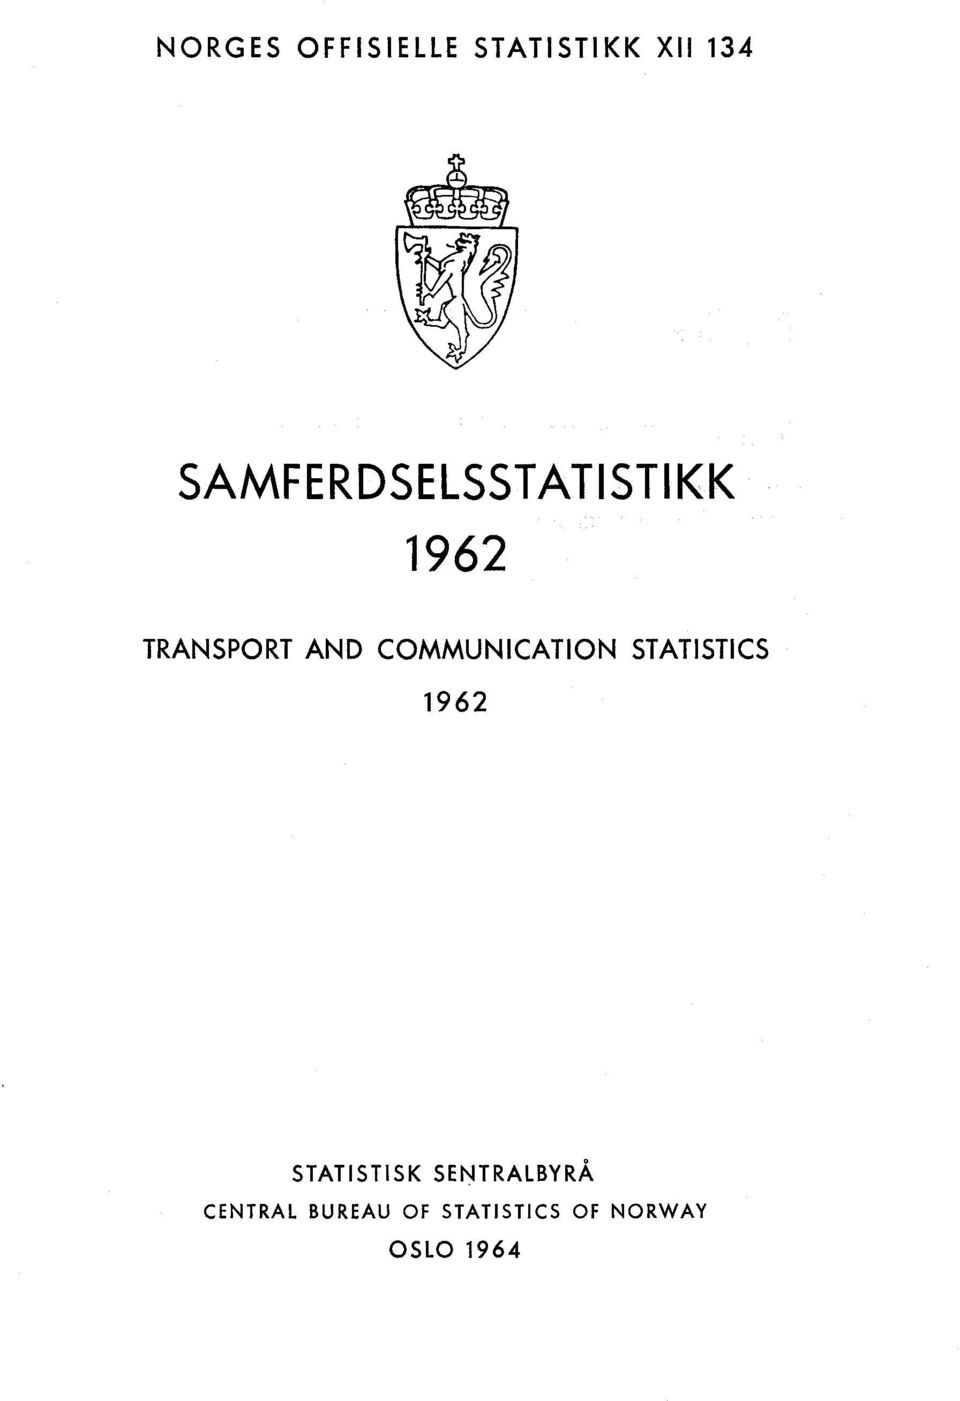 COMMUNICATION STATISTICS 1962 STATISTISK